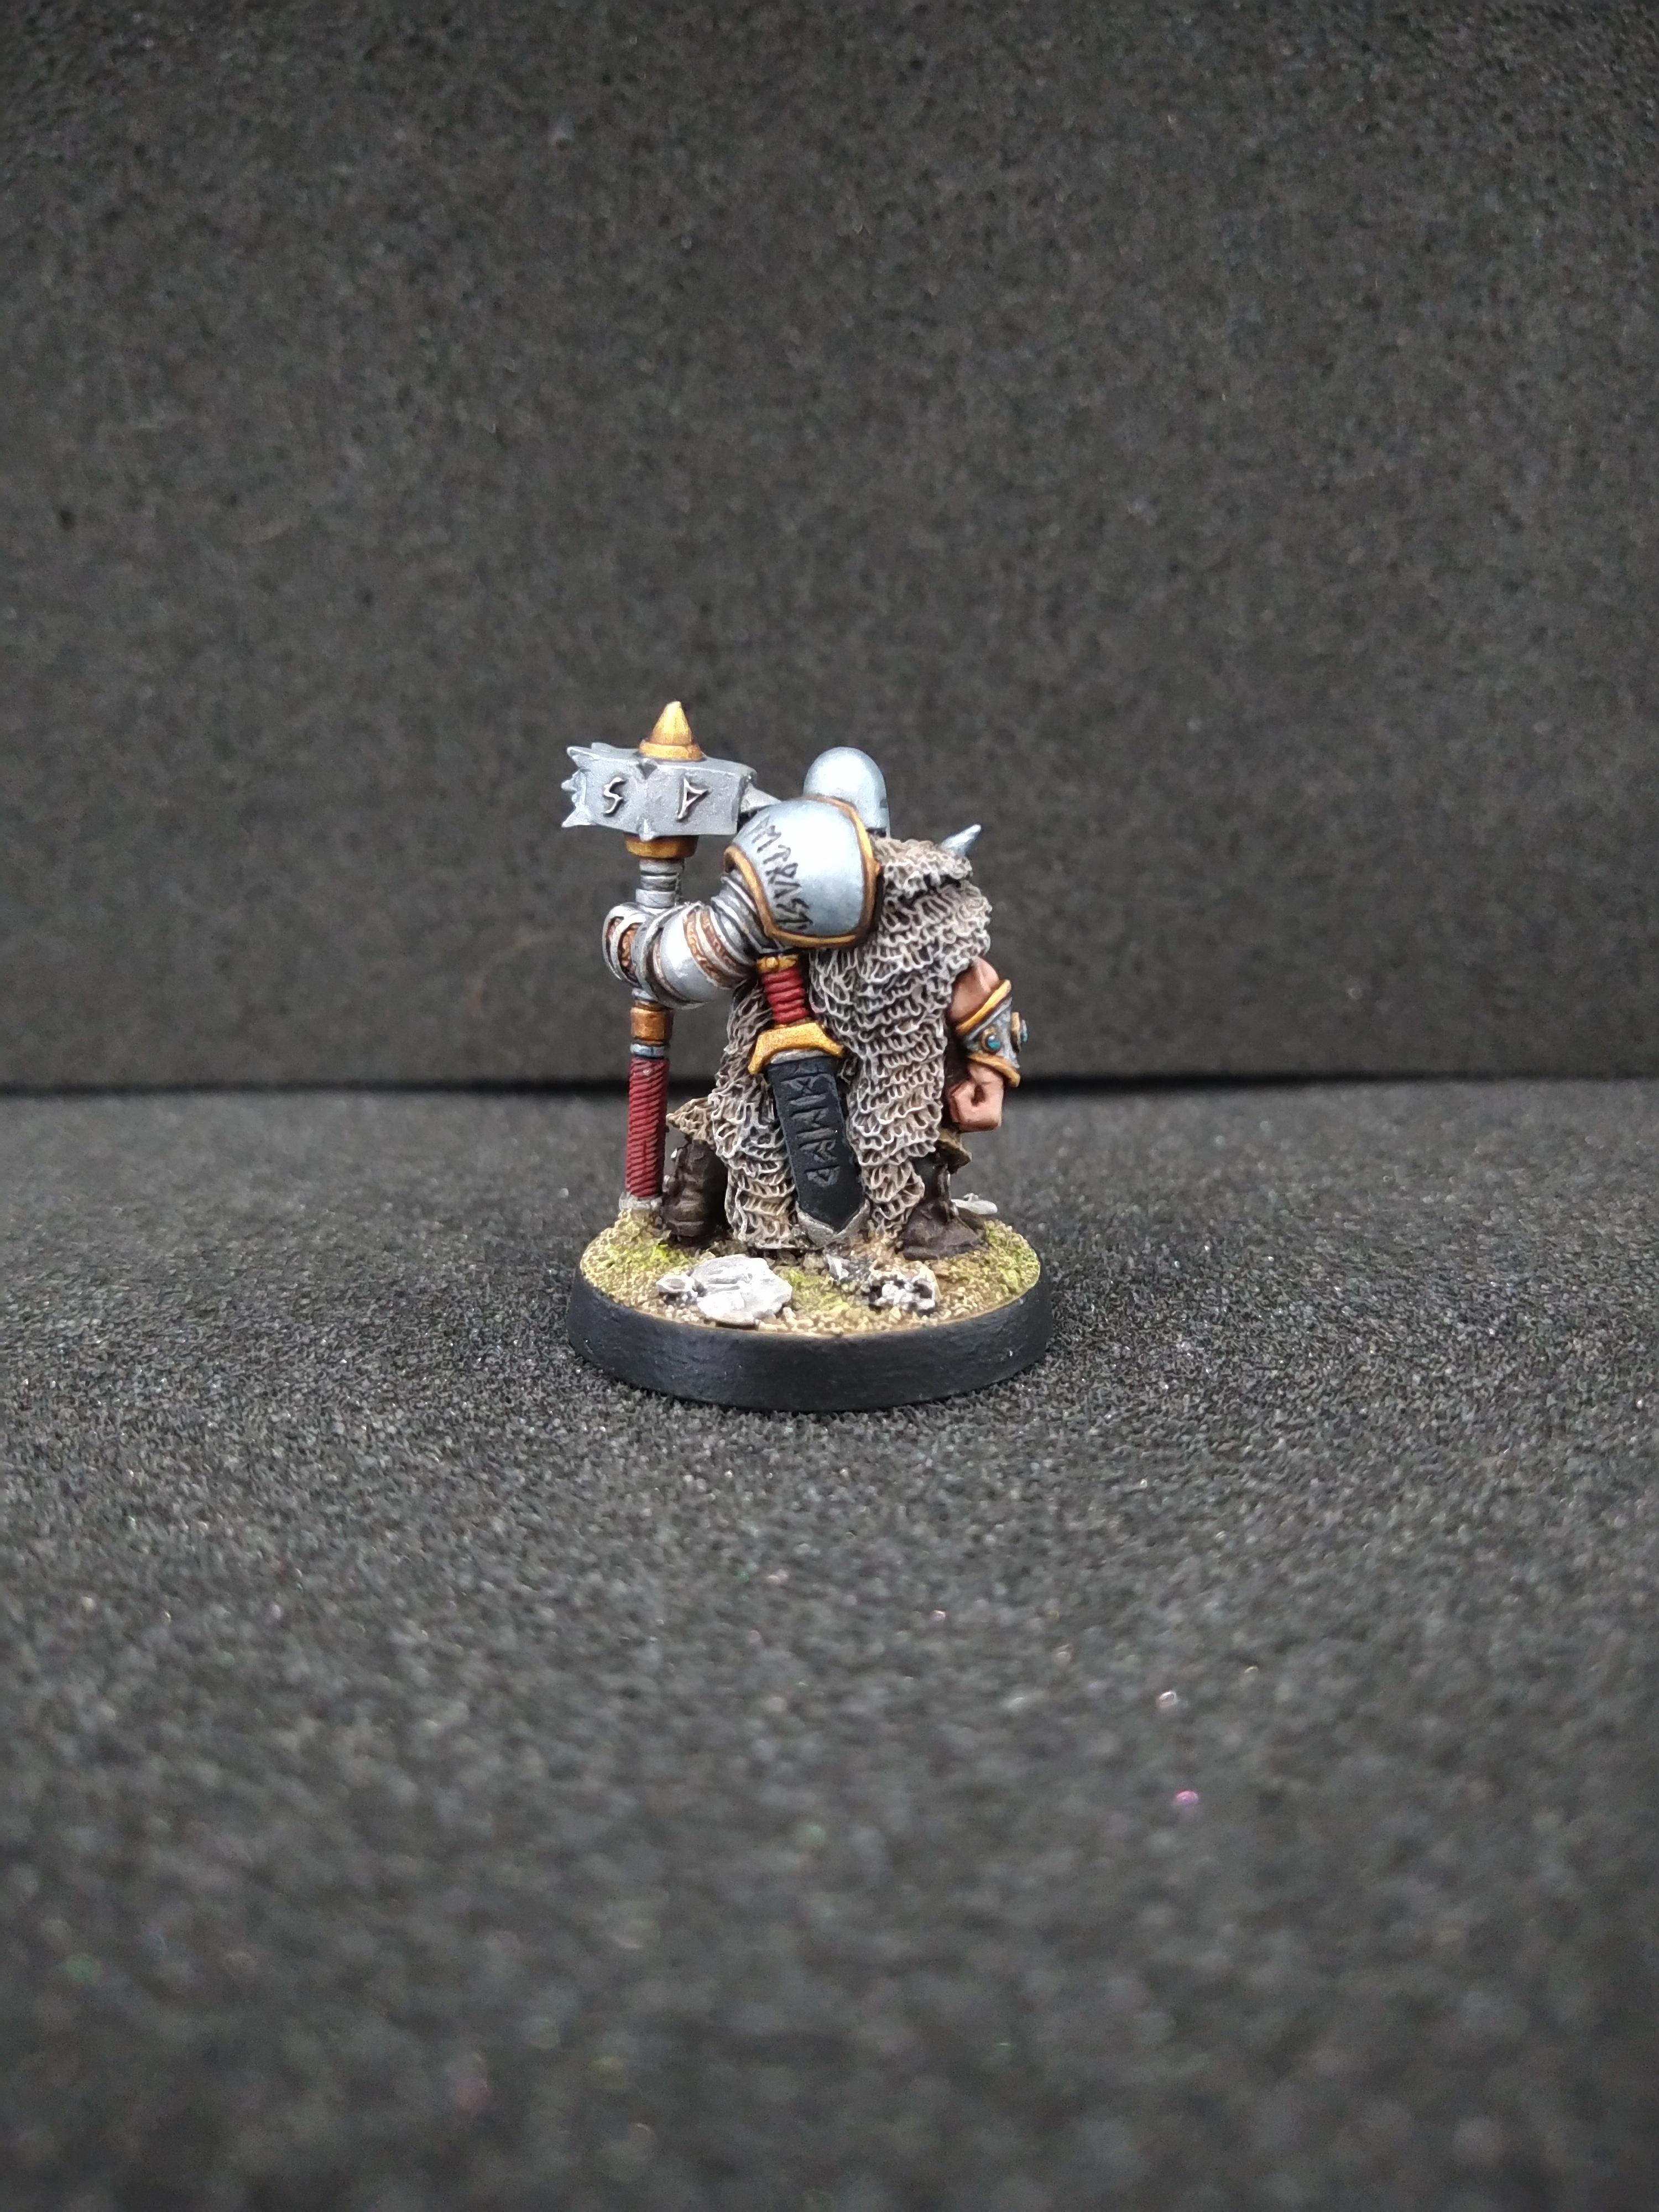 Free, Hassle, Hasslefree, Kain, Miniatures